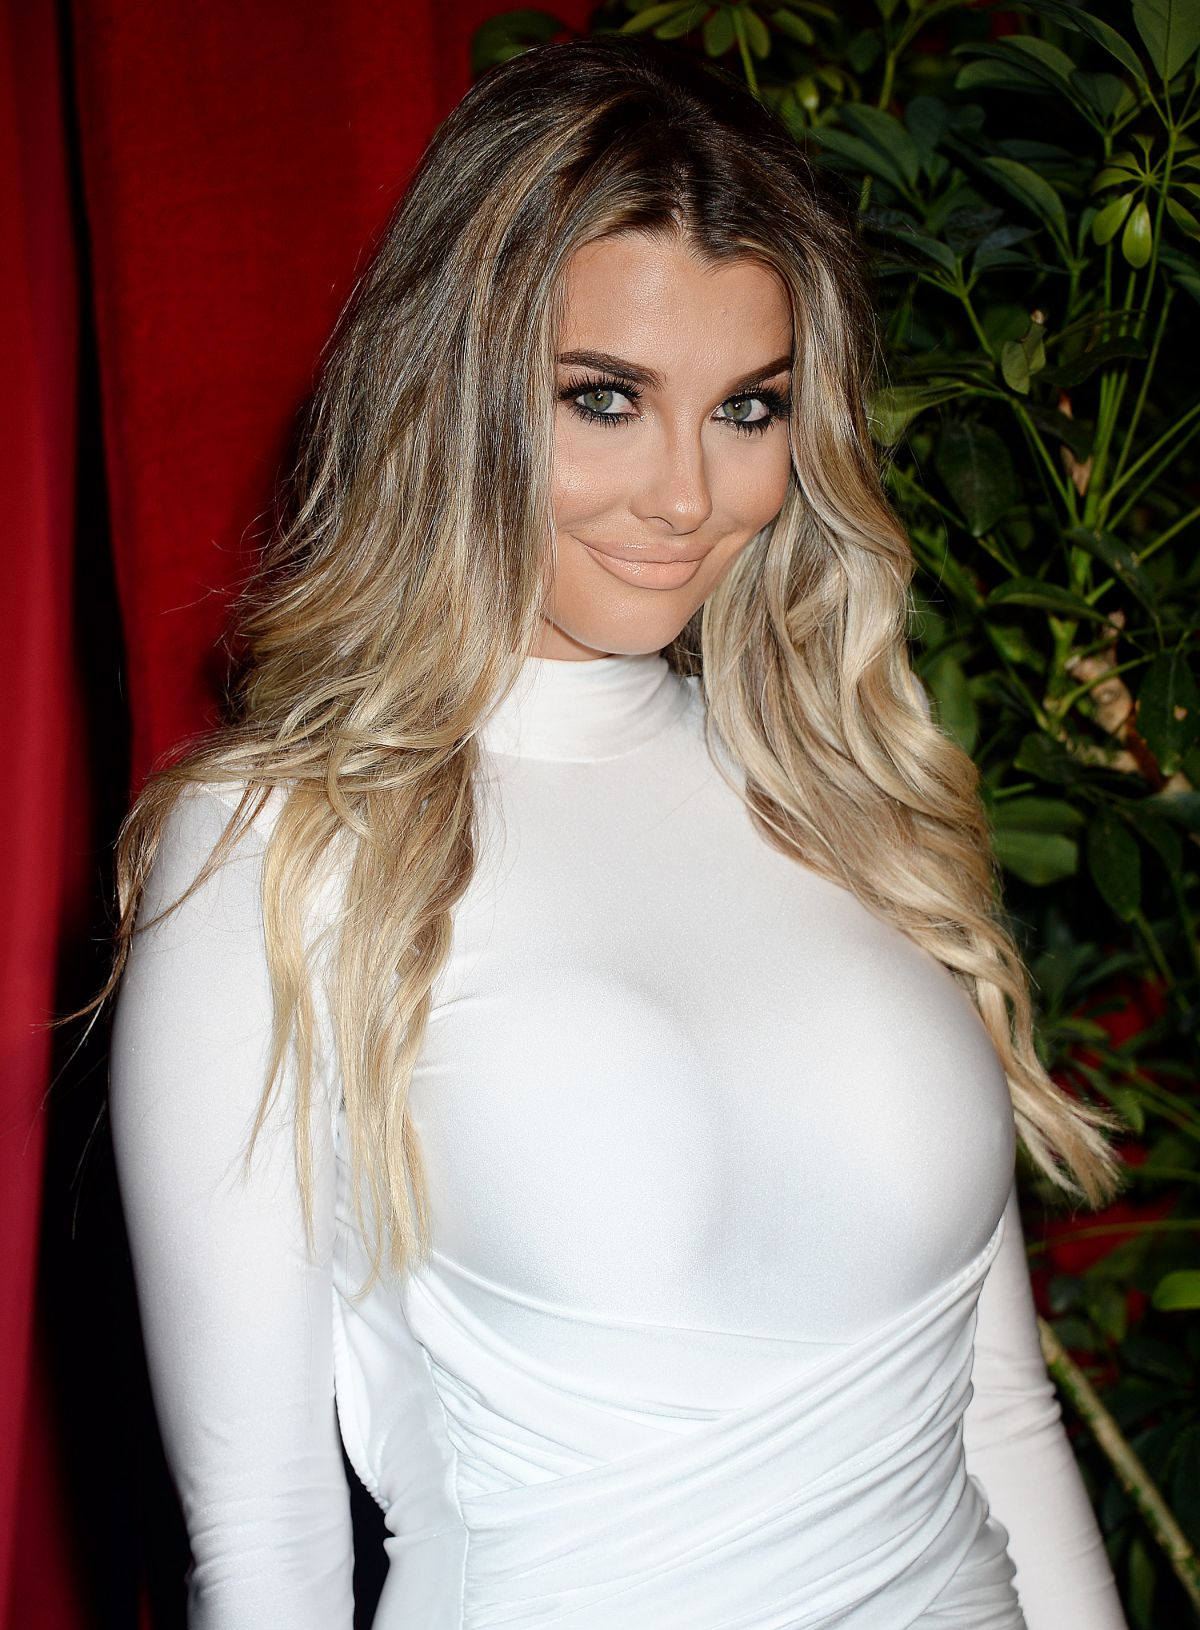 EMILY SEARS at 2016 Maxim Hot 100 Party in Los Angeles 07